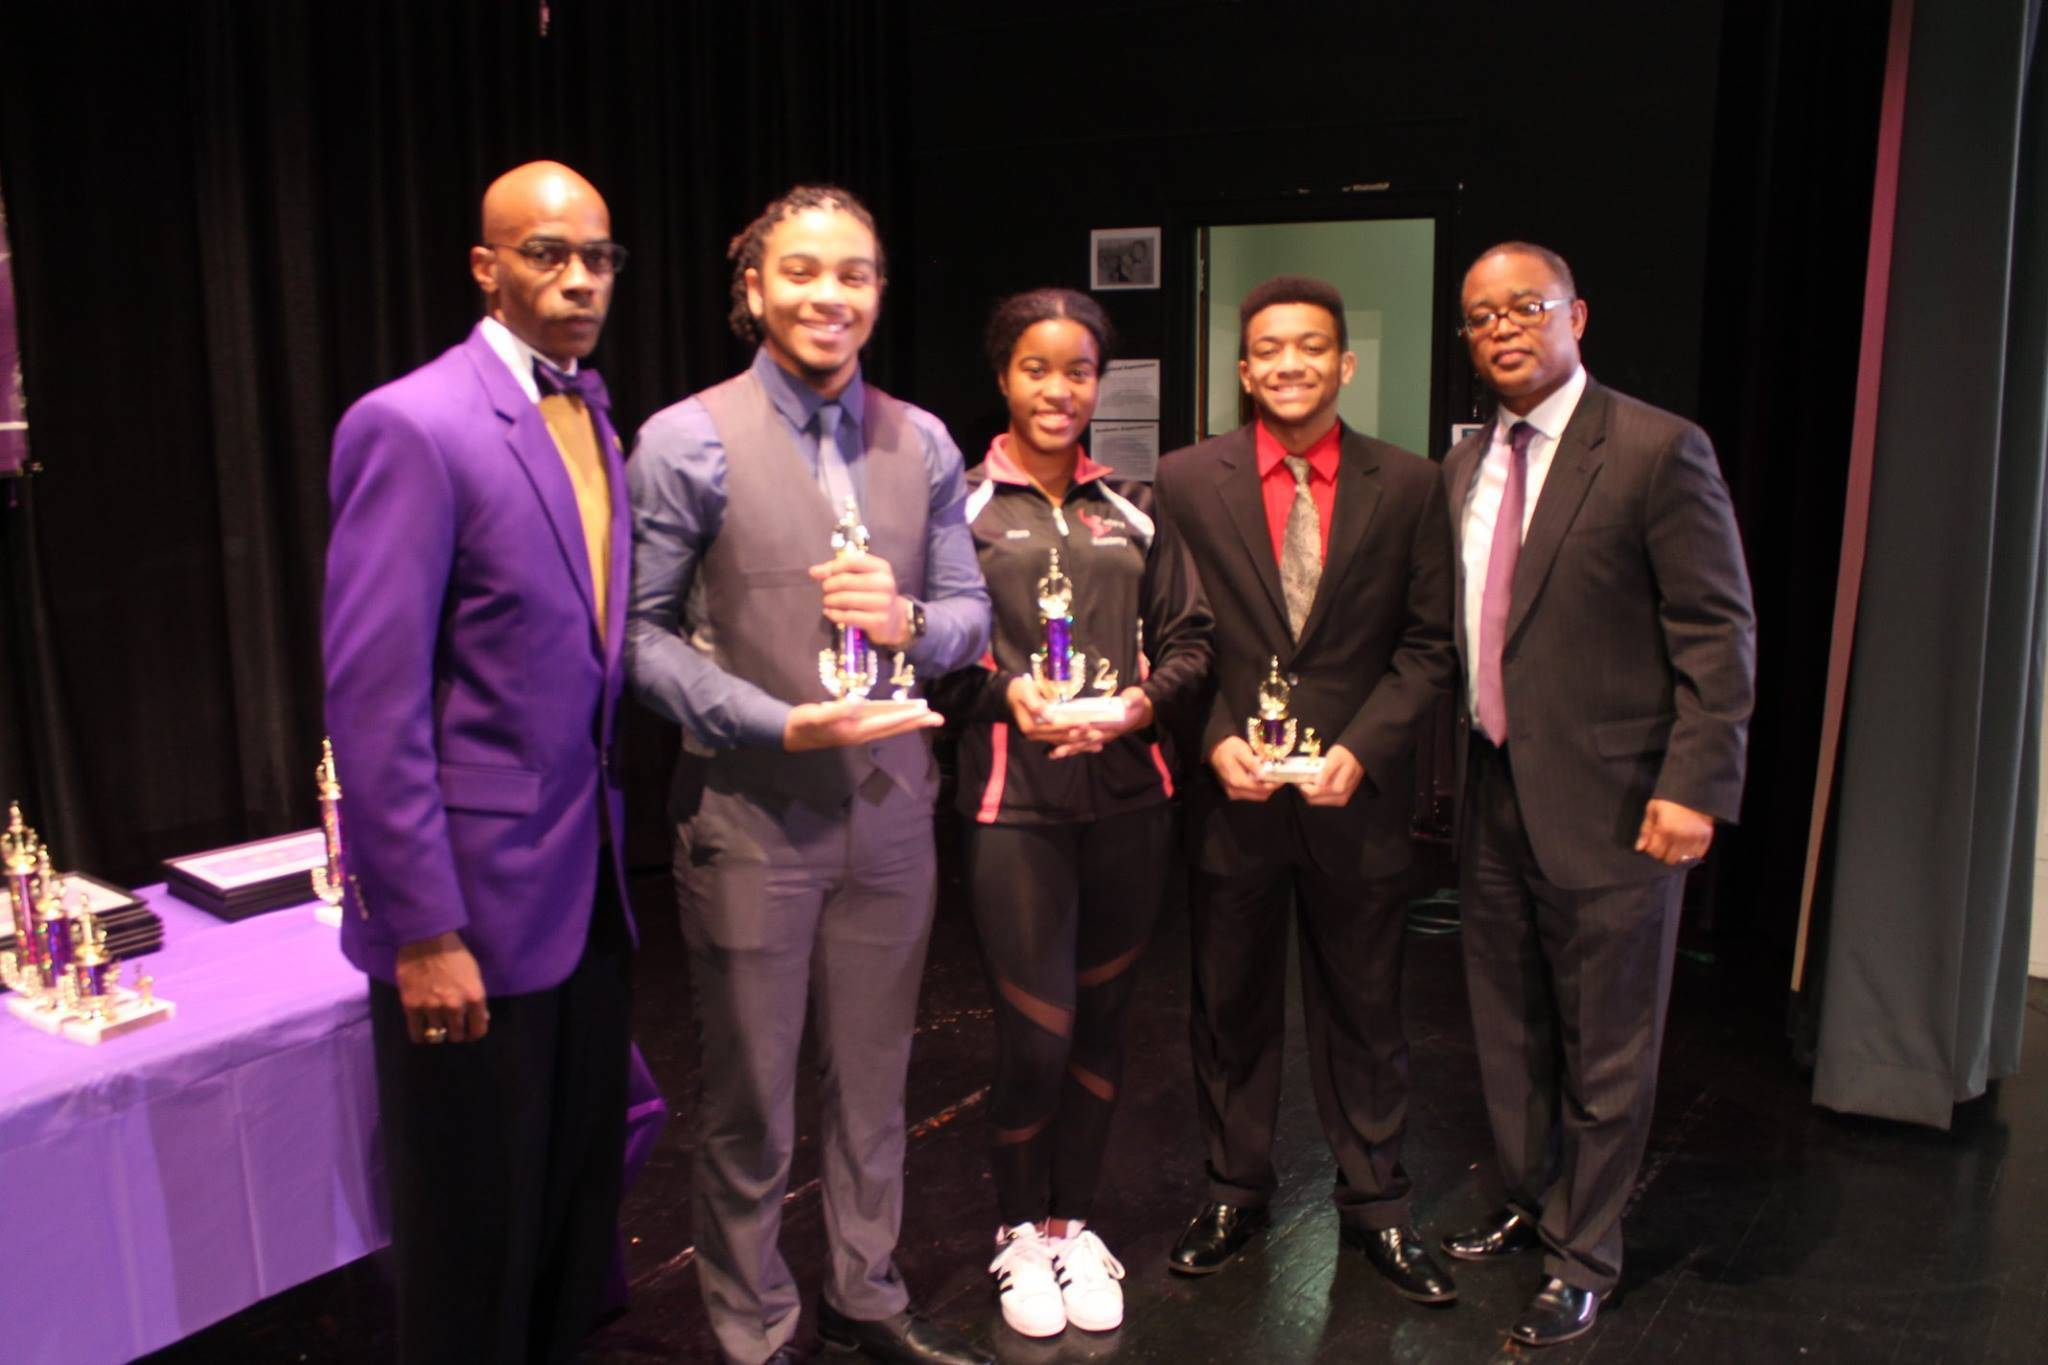 non violence stay the course plainfield celebration of the l to r basileus leon smith 2017 ox high school essay winners xavier norman 1st place kiara smith 2nd place john metz iv 3rd place